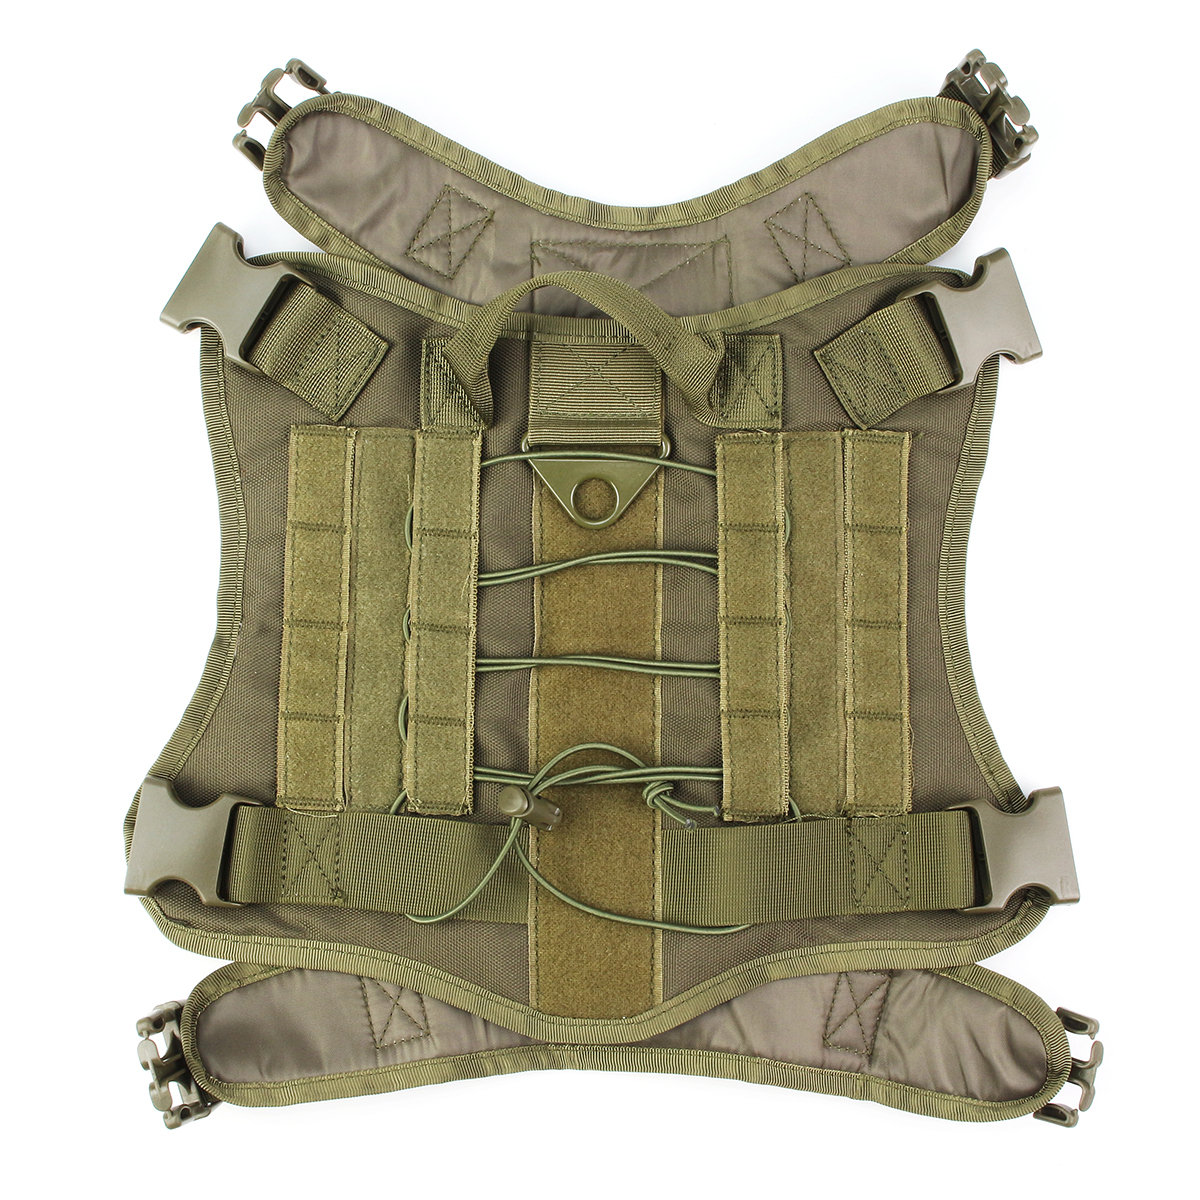 L Size 1000D Pet Trainer Nylon Outdoor Military Tactical Dog Training Molle Compact Vest Harness MOLLE System Clothes